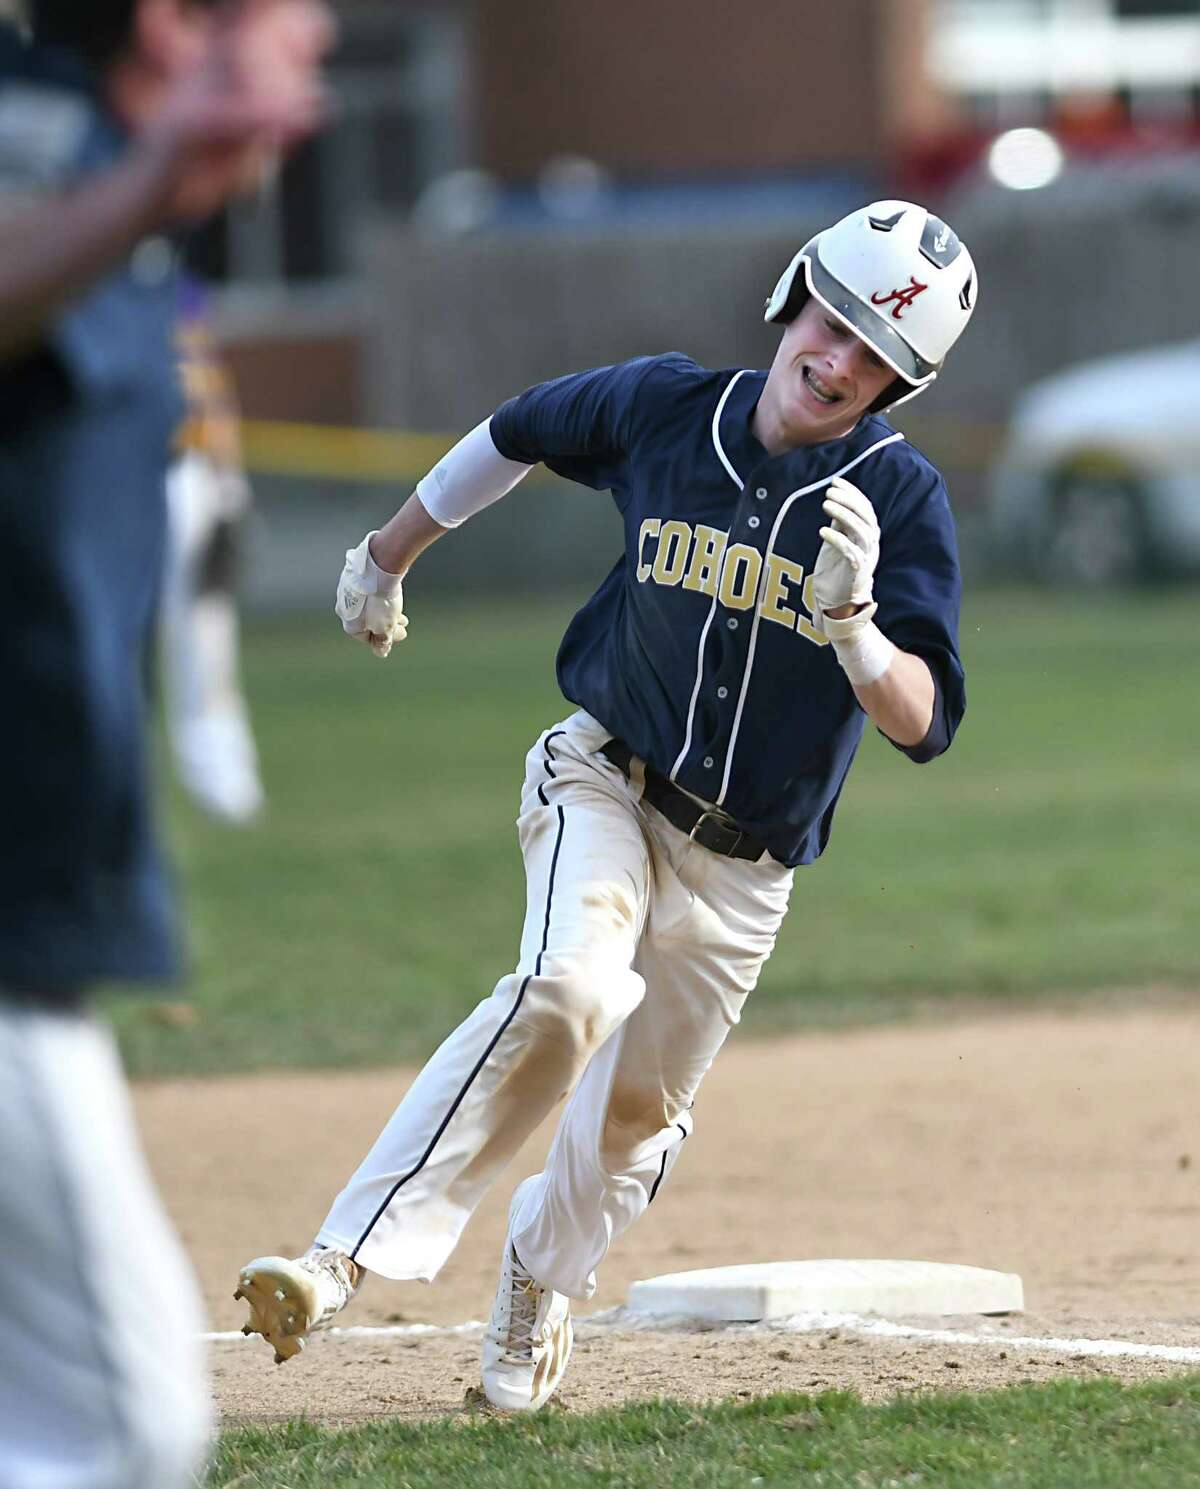 Cohoes shortstop Derek Becker rounds third as the third base coach motions him to run home during a baseball game against Voorheesville on Monday, April 10, 2017 in Voorheesville, N.Y. Becker was safe at home. (Lori Van Buren / Times Union)